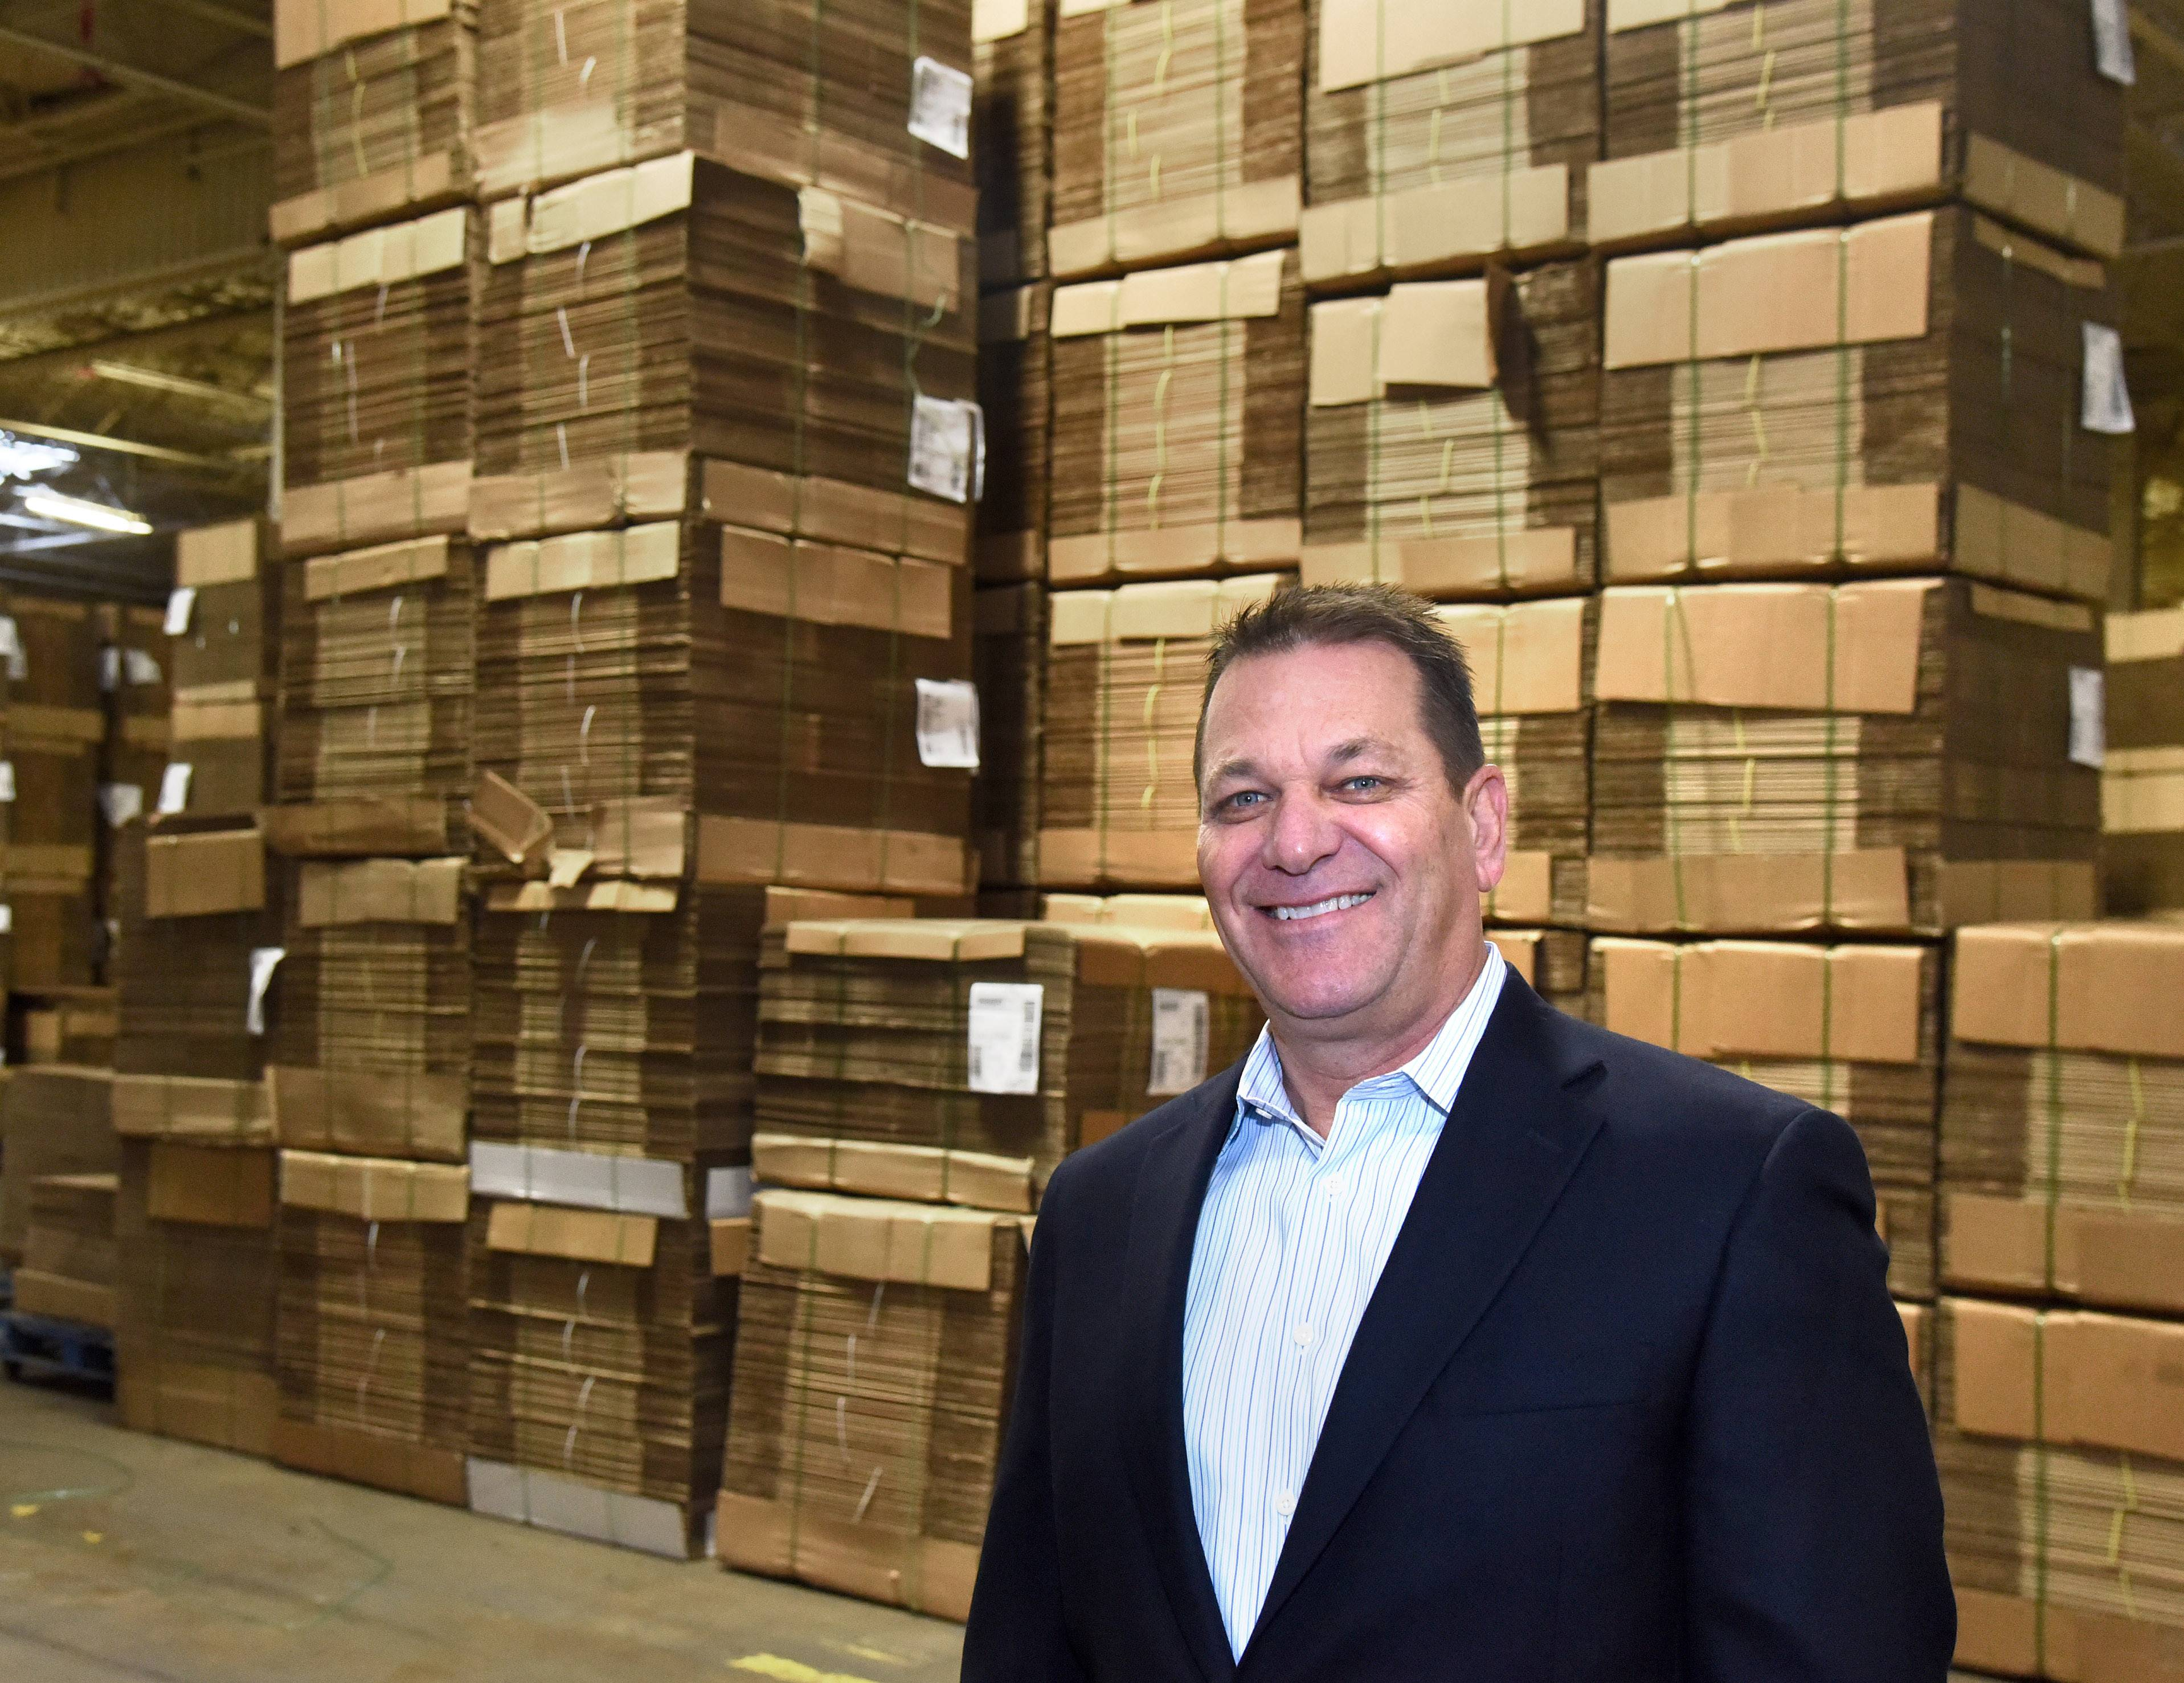 Mike Hrbacek, owner of The Packaging Wholesalers, inside his warehouse in Elgin. He invested $5.4 million of renovations into the building.